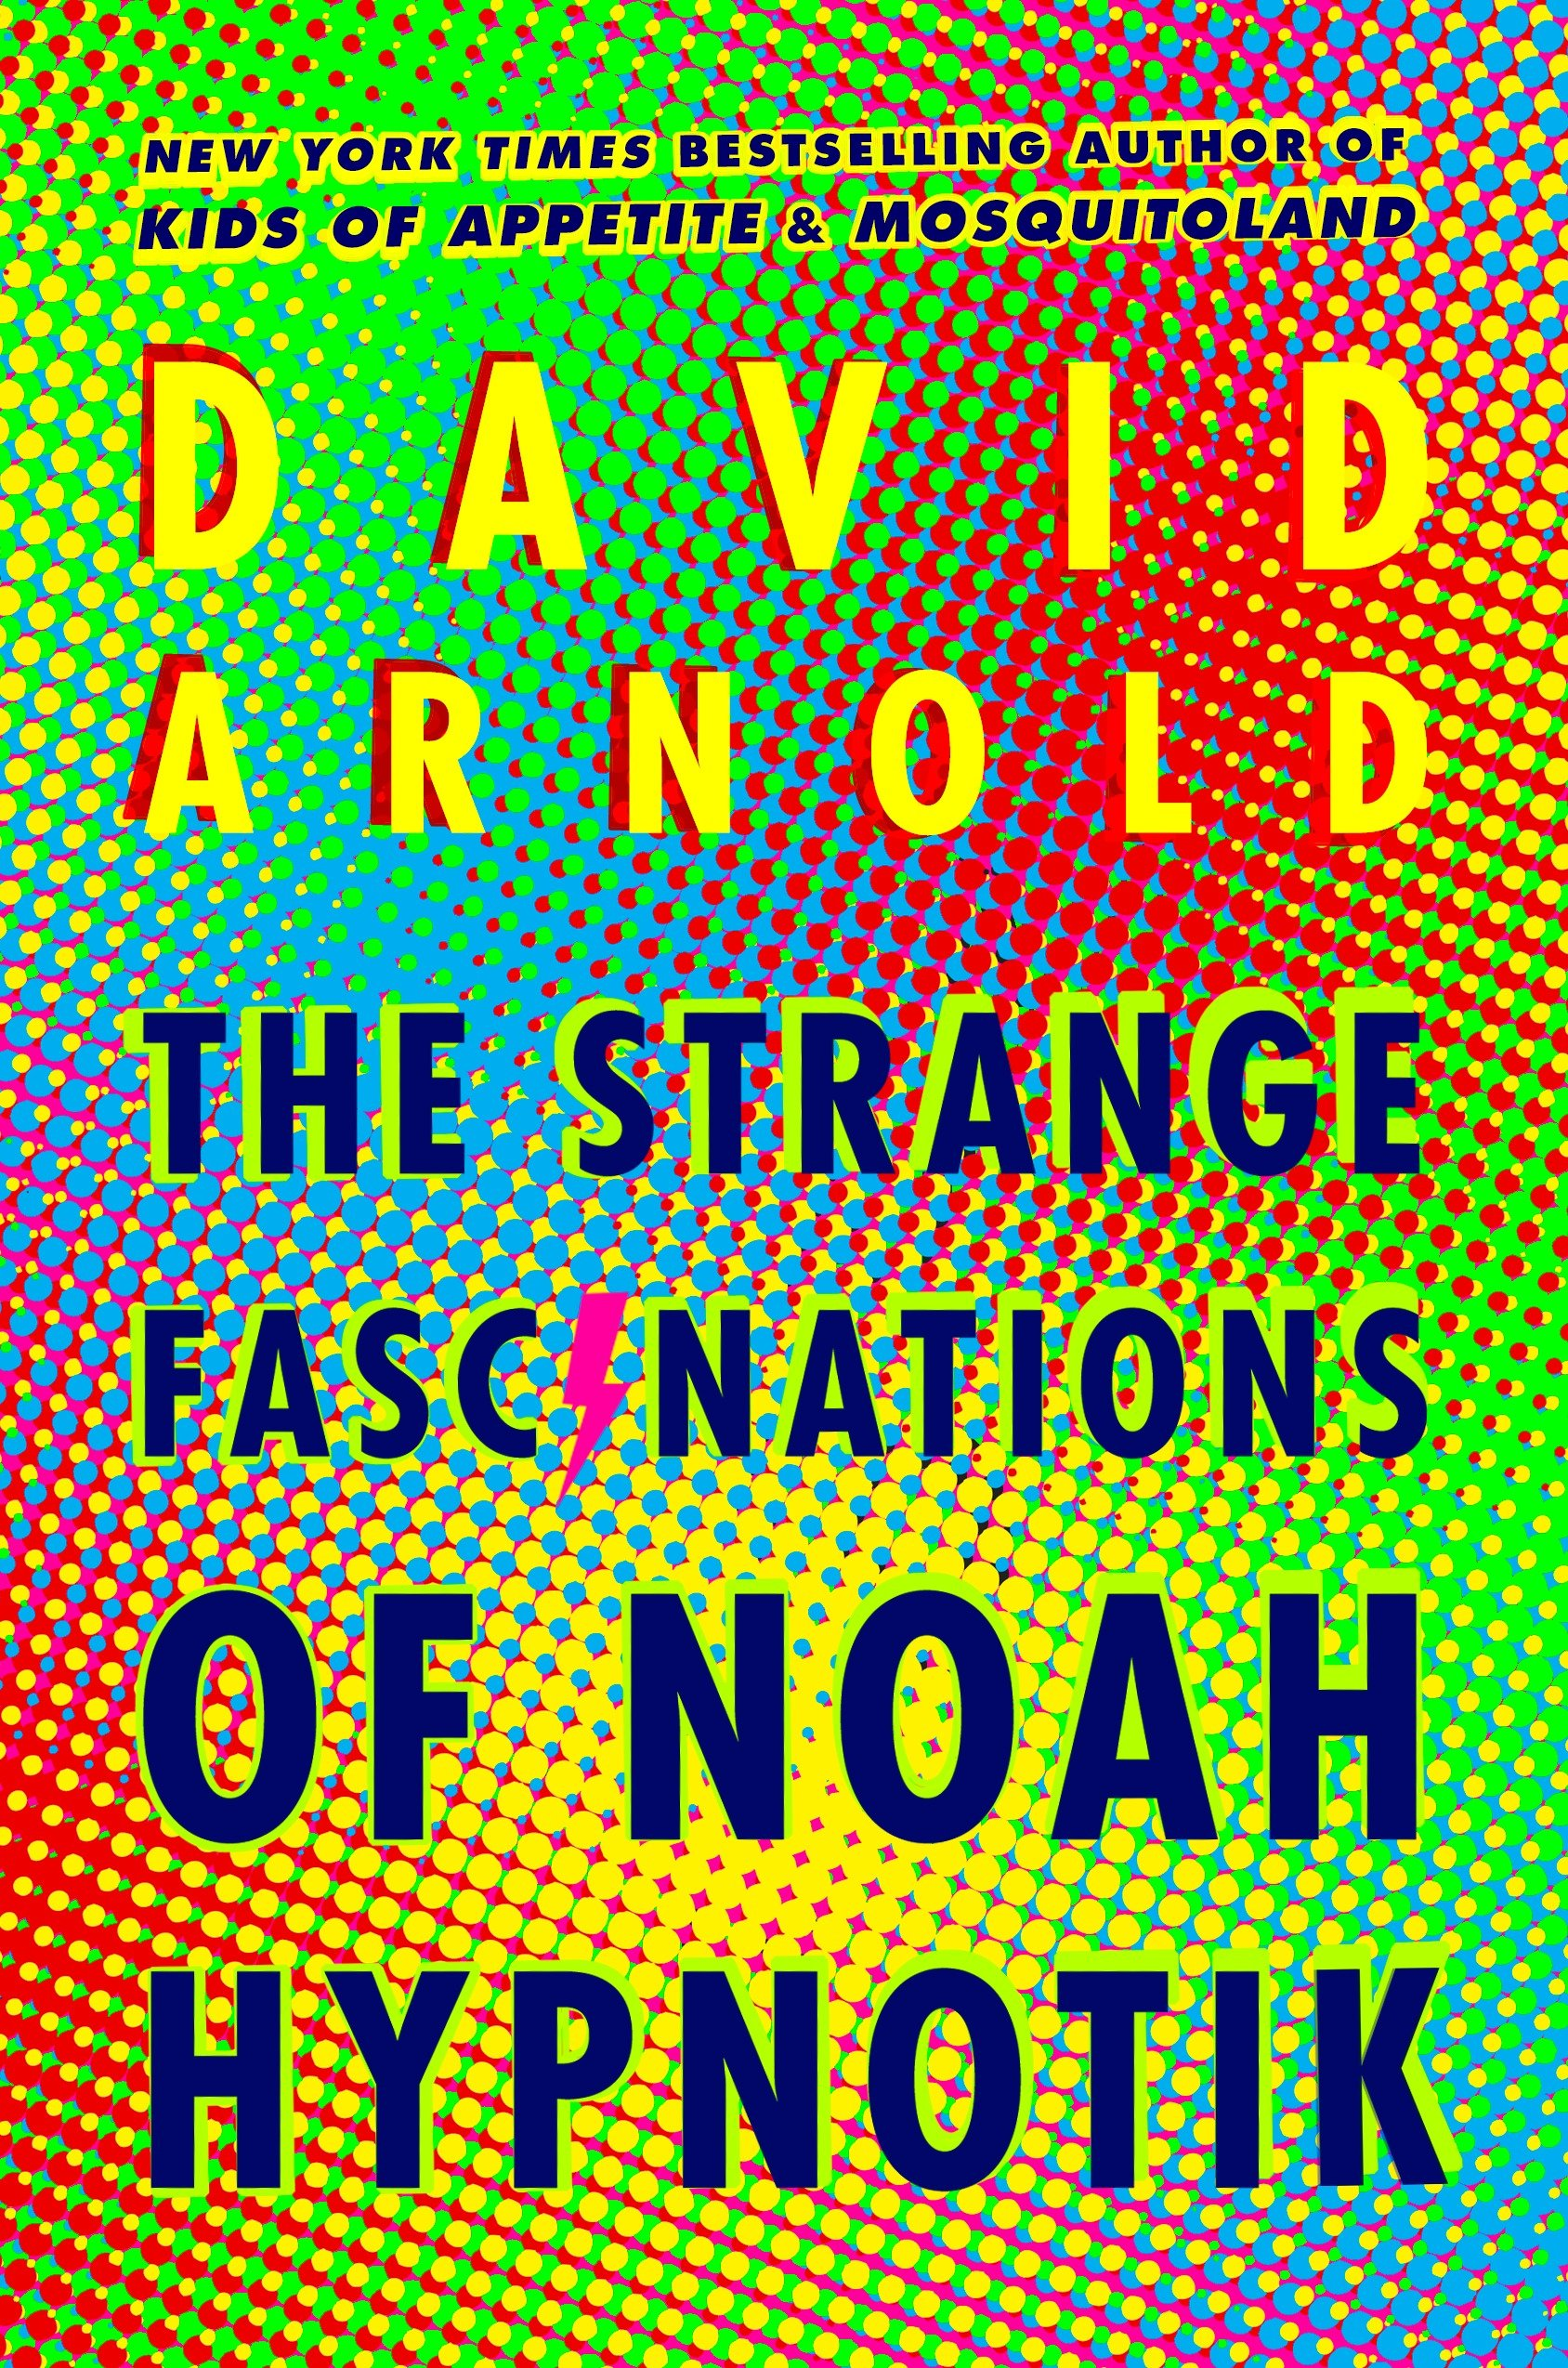 The Strange Fascinations of Noah Hypnotik by David Arnold | SLJ Review